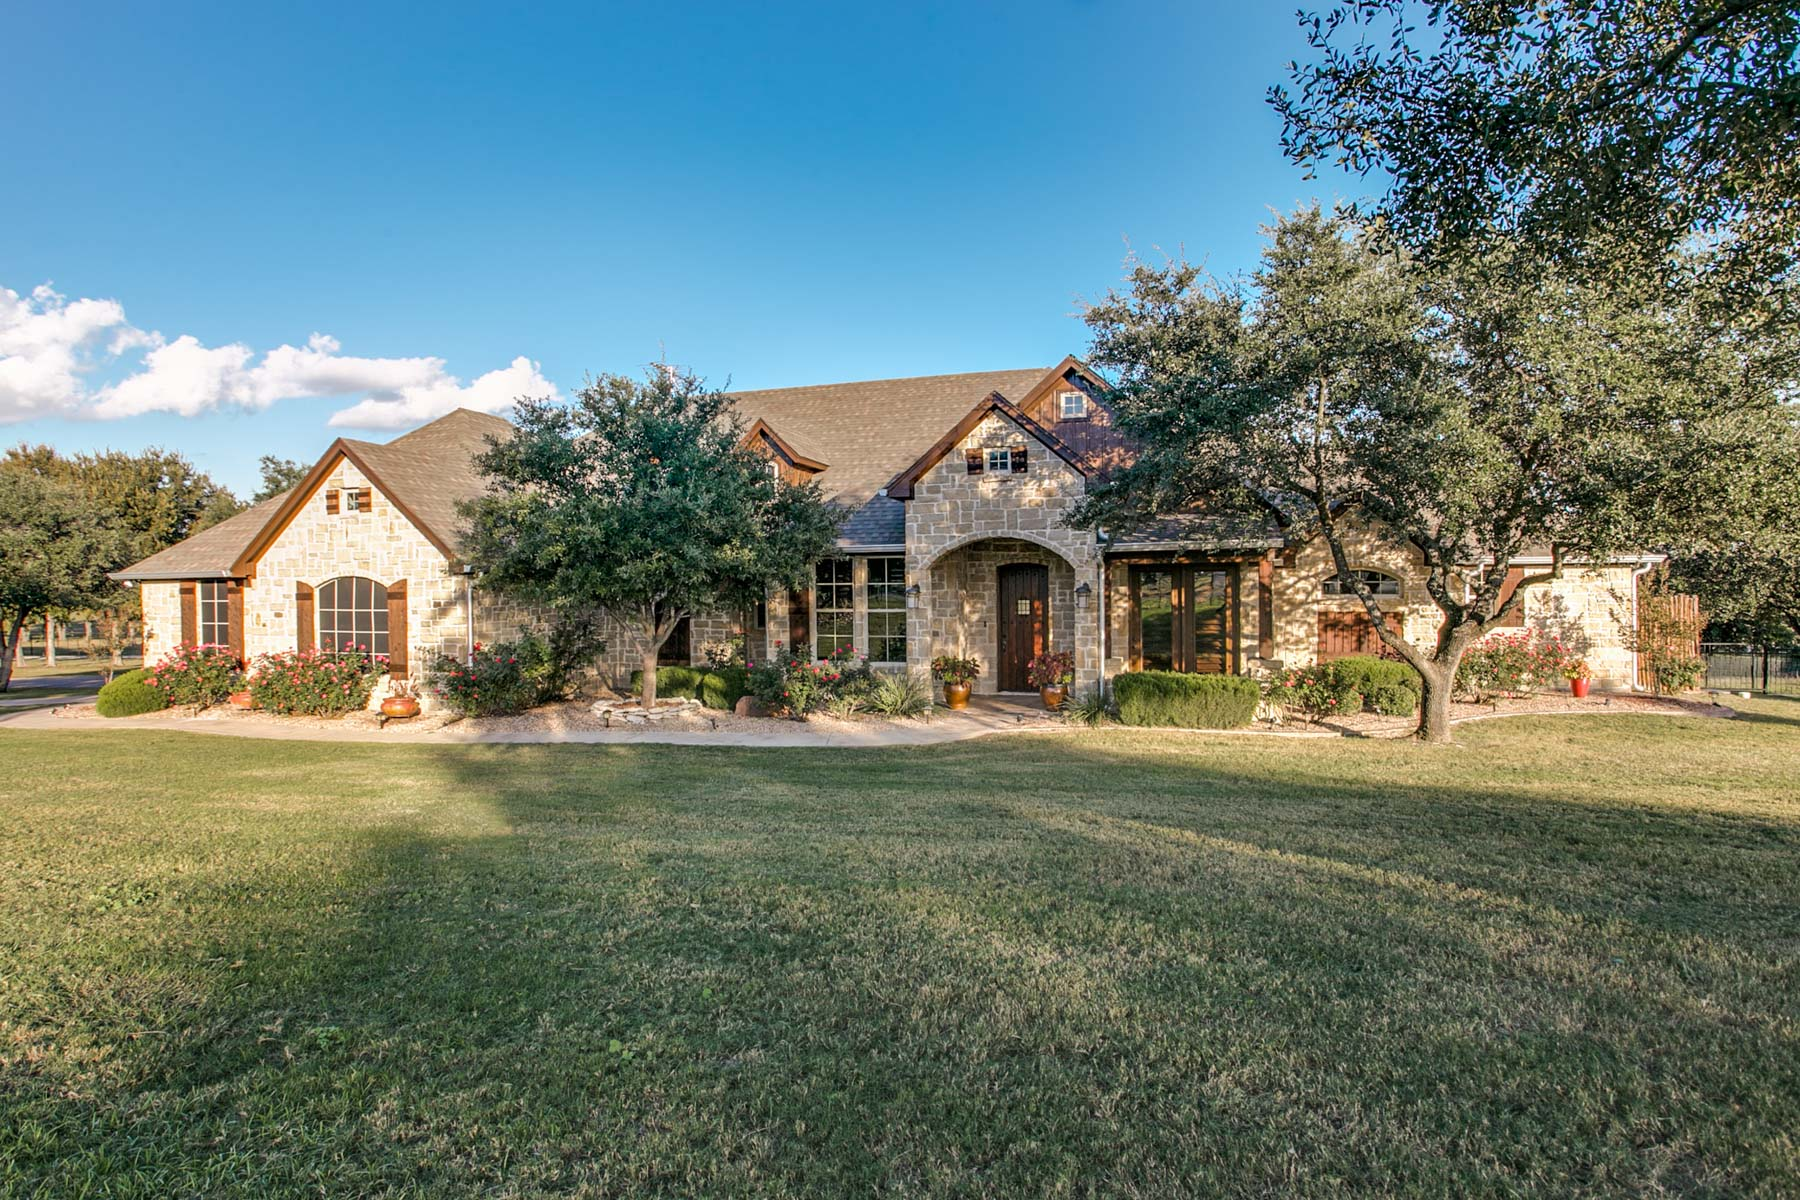 Vivienda unifamiliar por un Venta en Silverado on the Brazos 257 Silver Spur Dr. Weatherford, Texas 76087 Estados Unidos